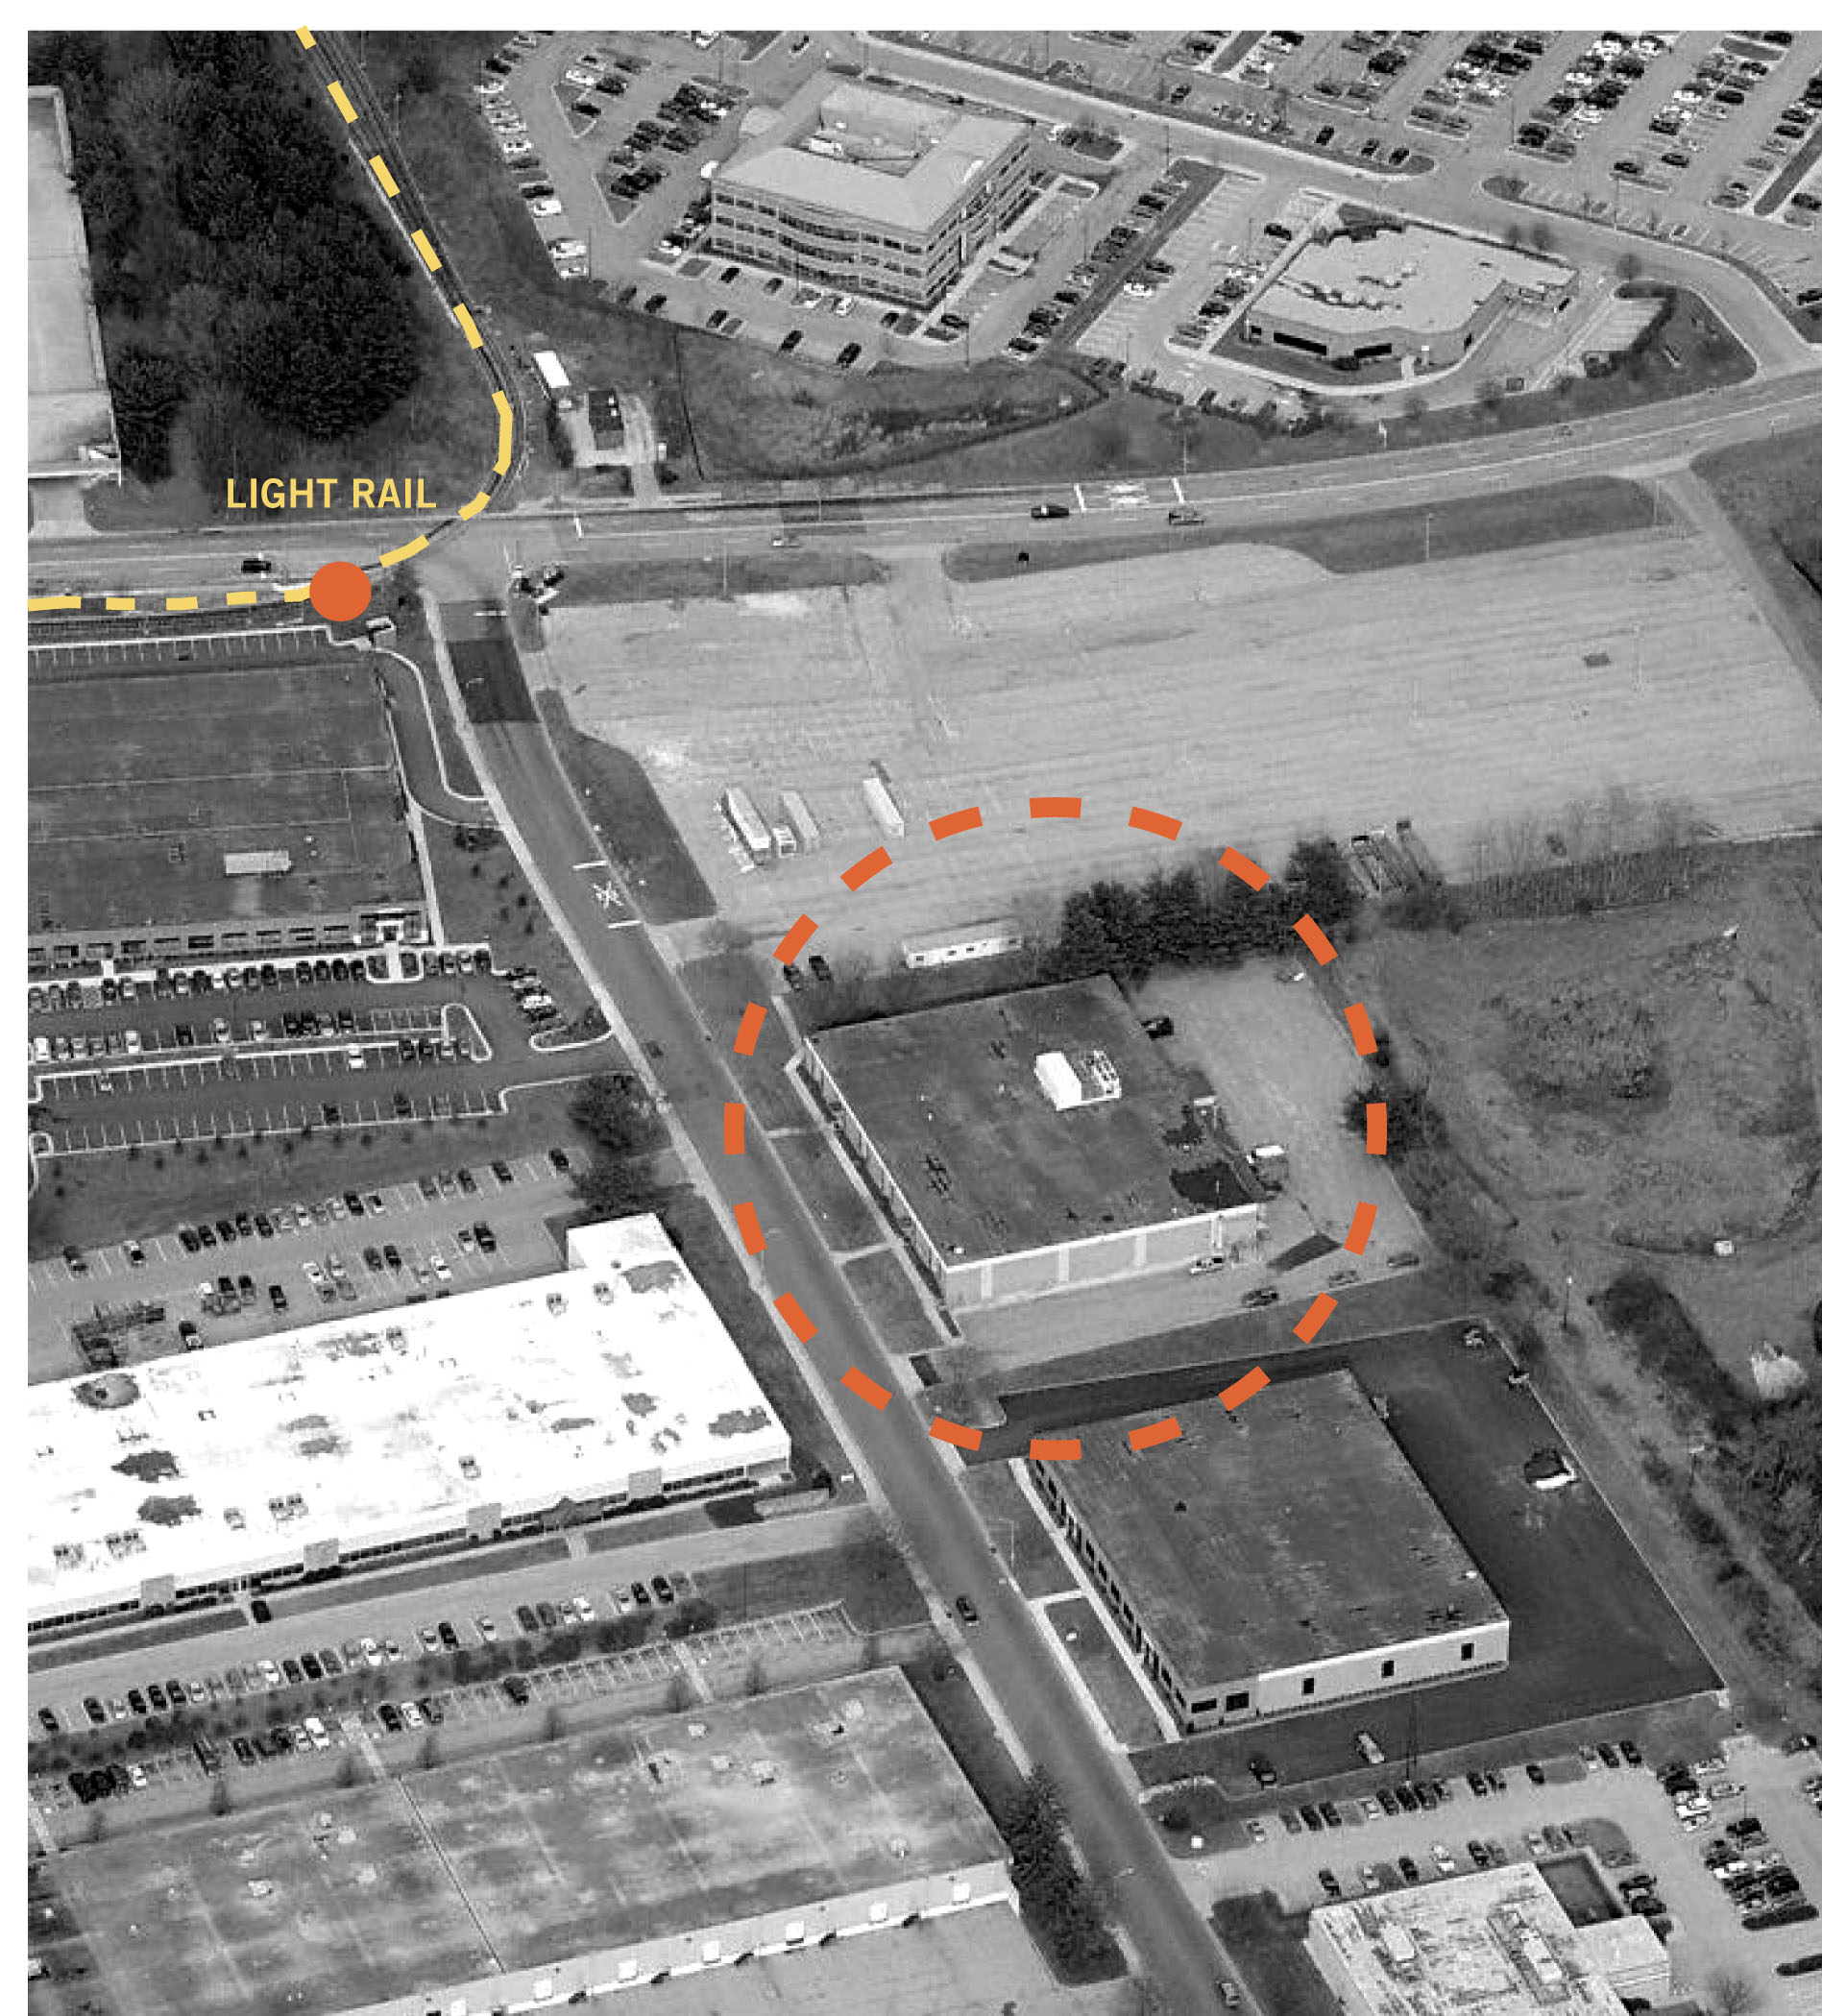 Aerial image of the original building including nearby light rail